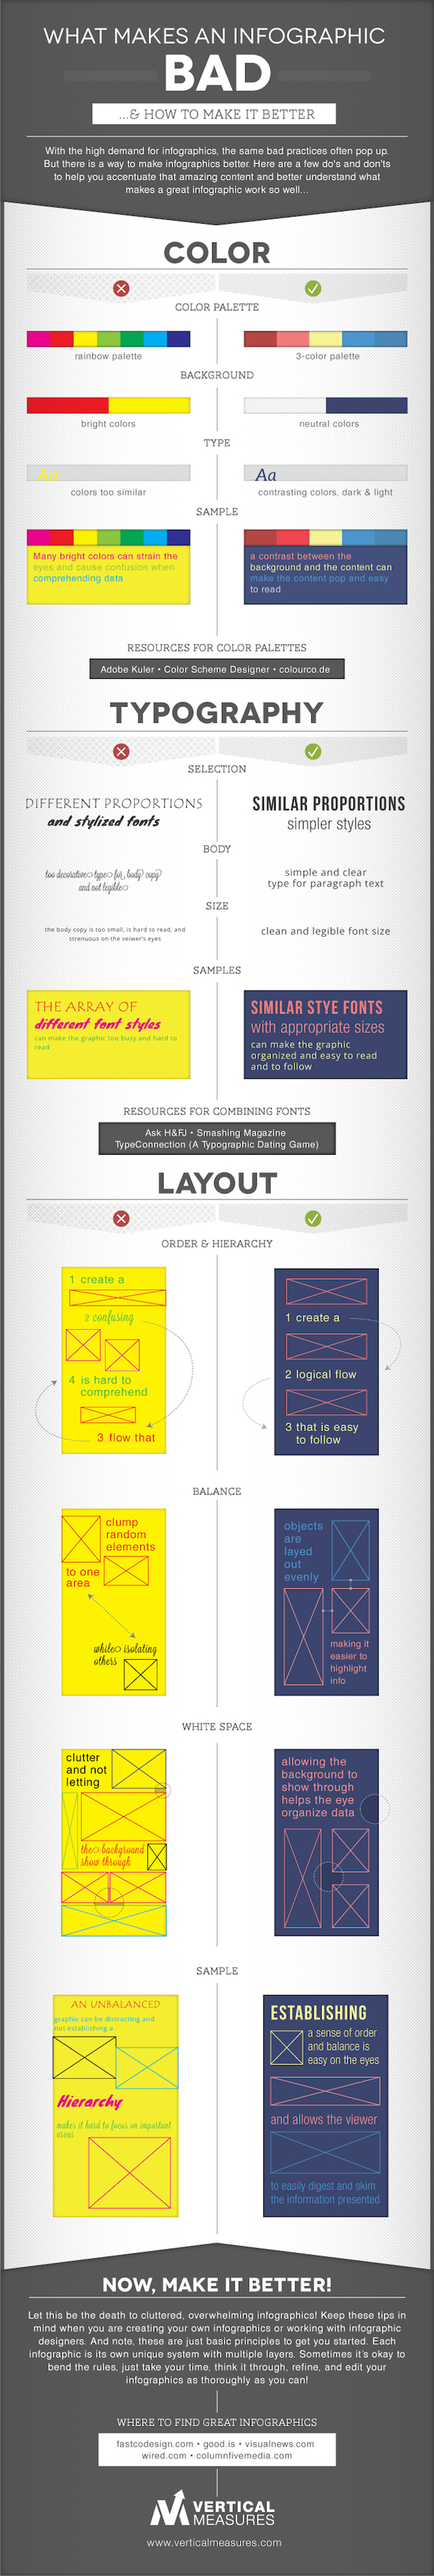 What-Makes-A-Bad-Infographic